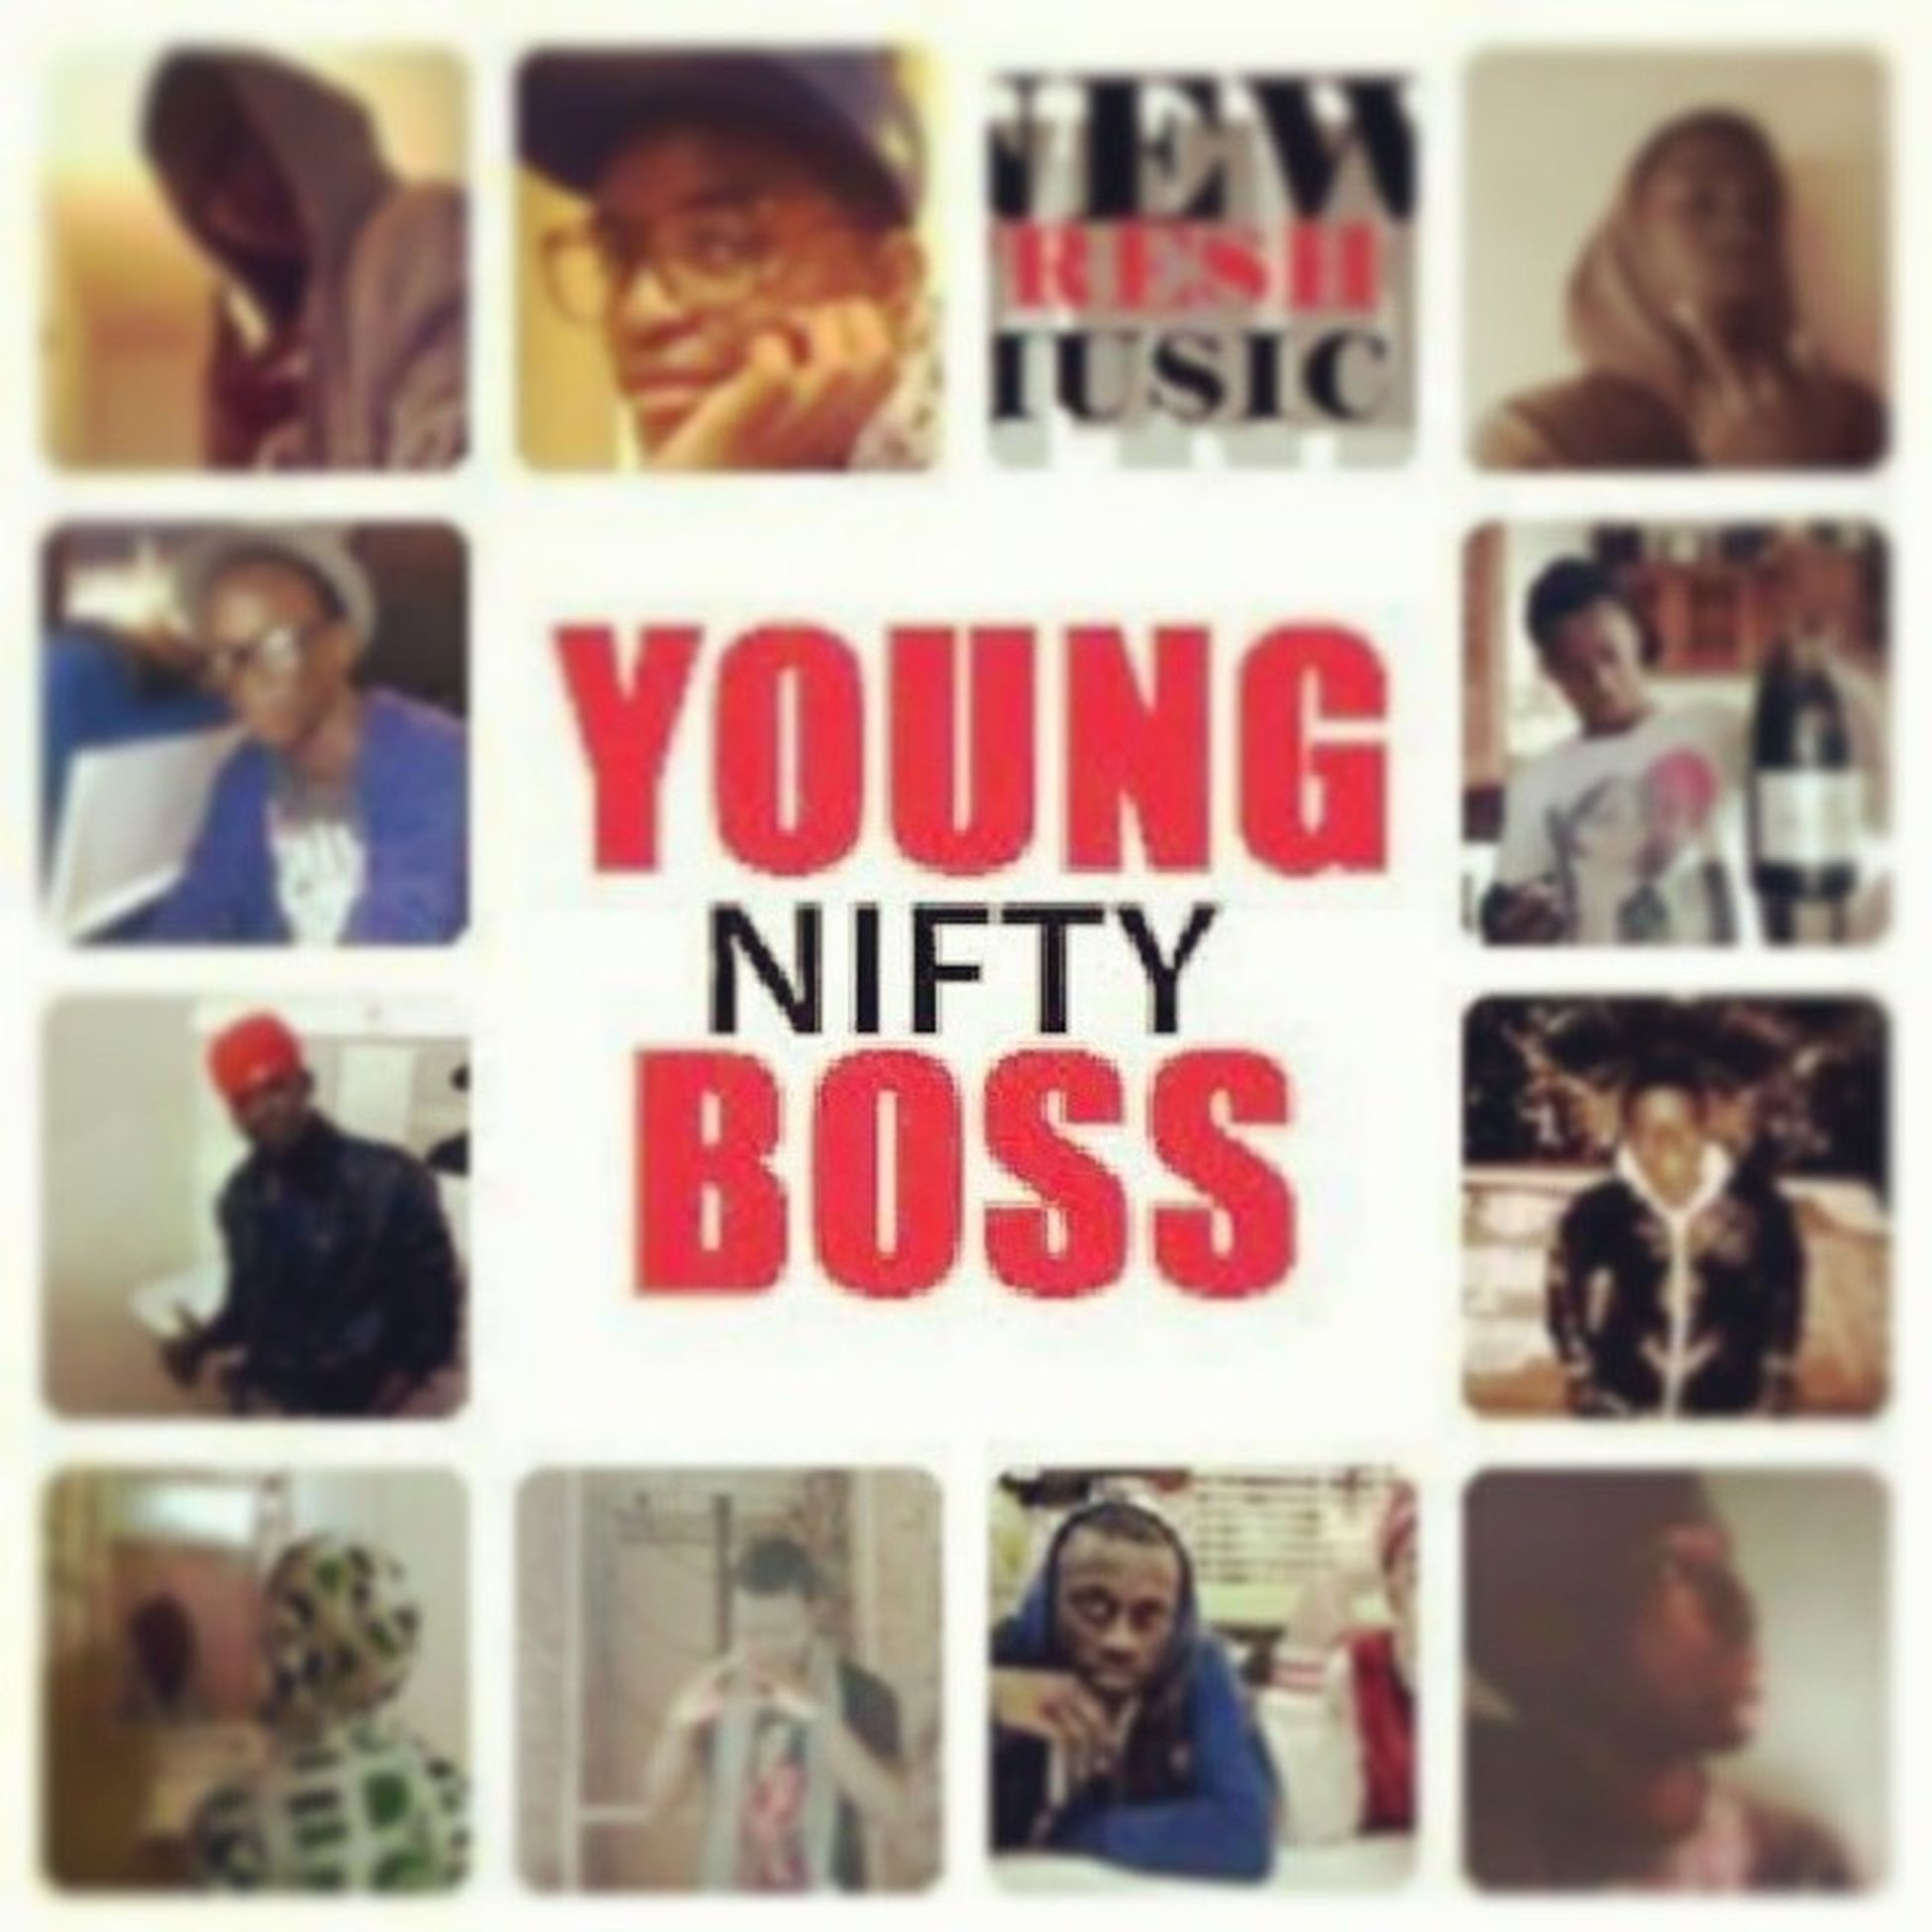 Youngniftyboss Family Instacollage